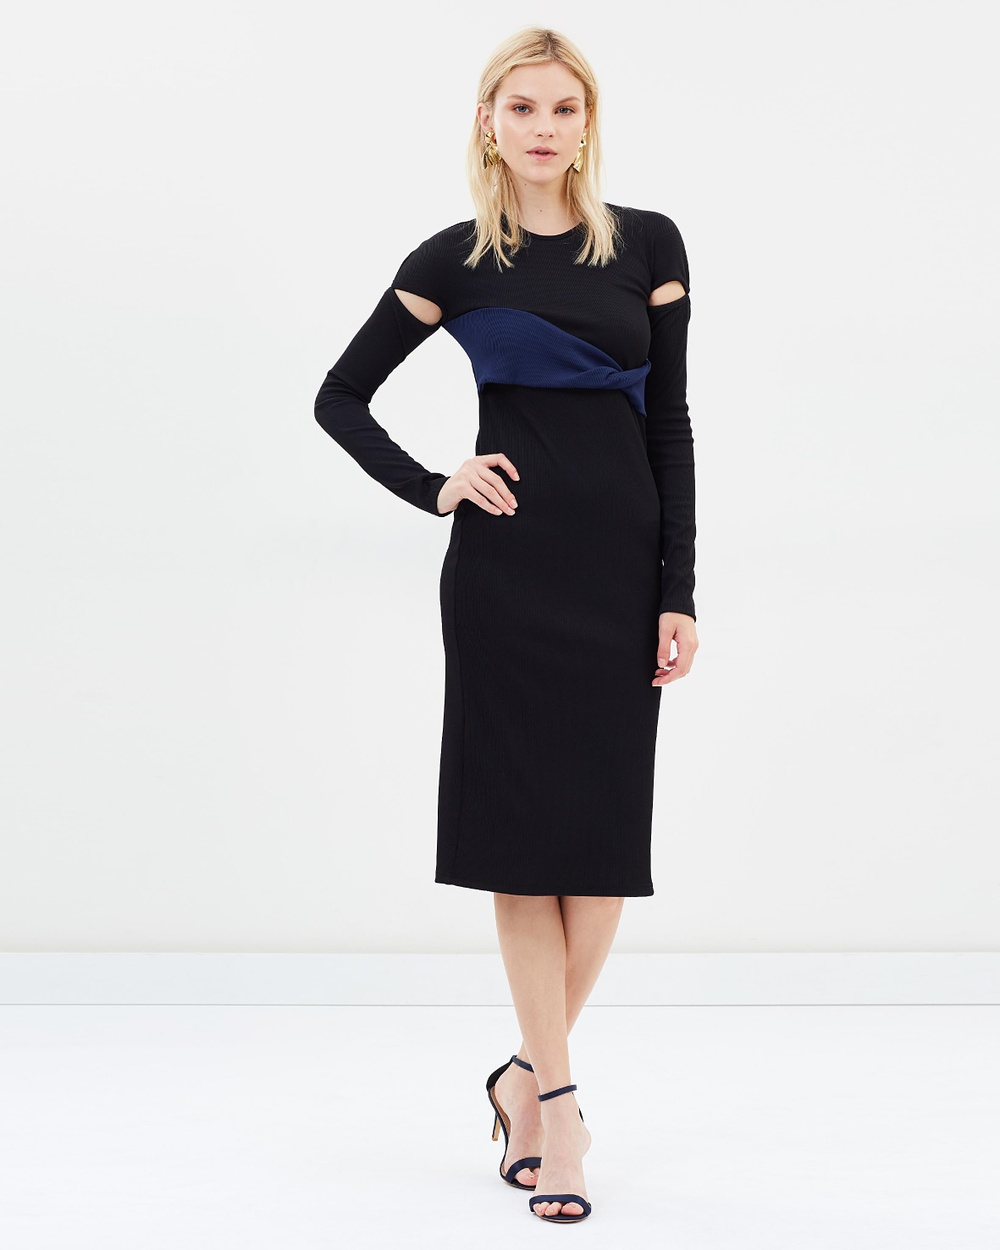 Christopher Esber Twist Rib Long Sleeve Dress Bodycon Dresses Black & Navy Twist Rib Long Sleeve Dress